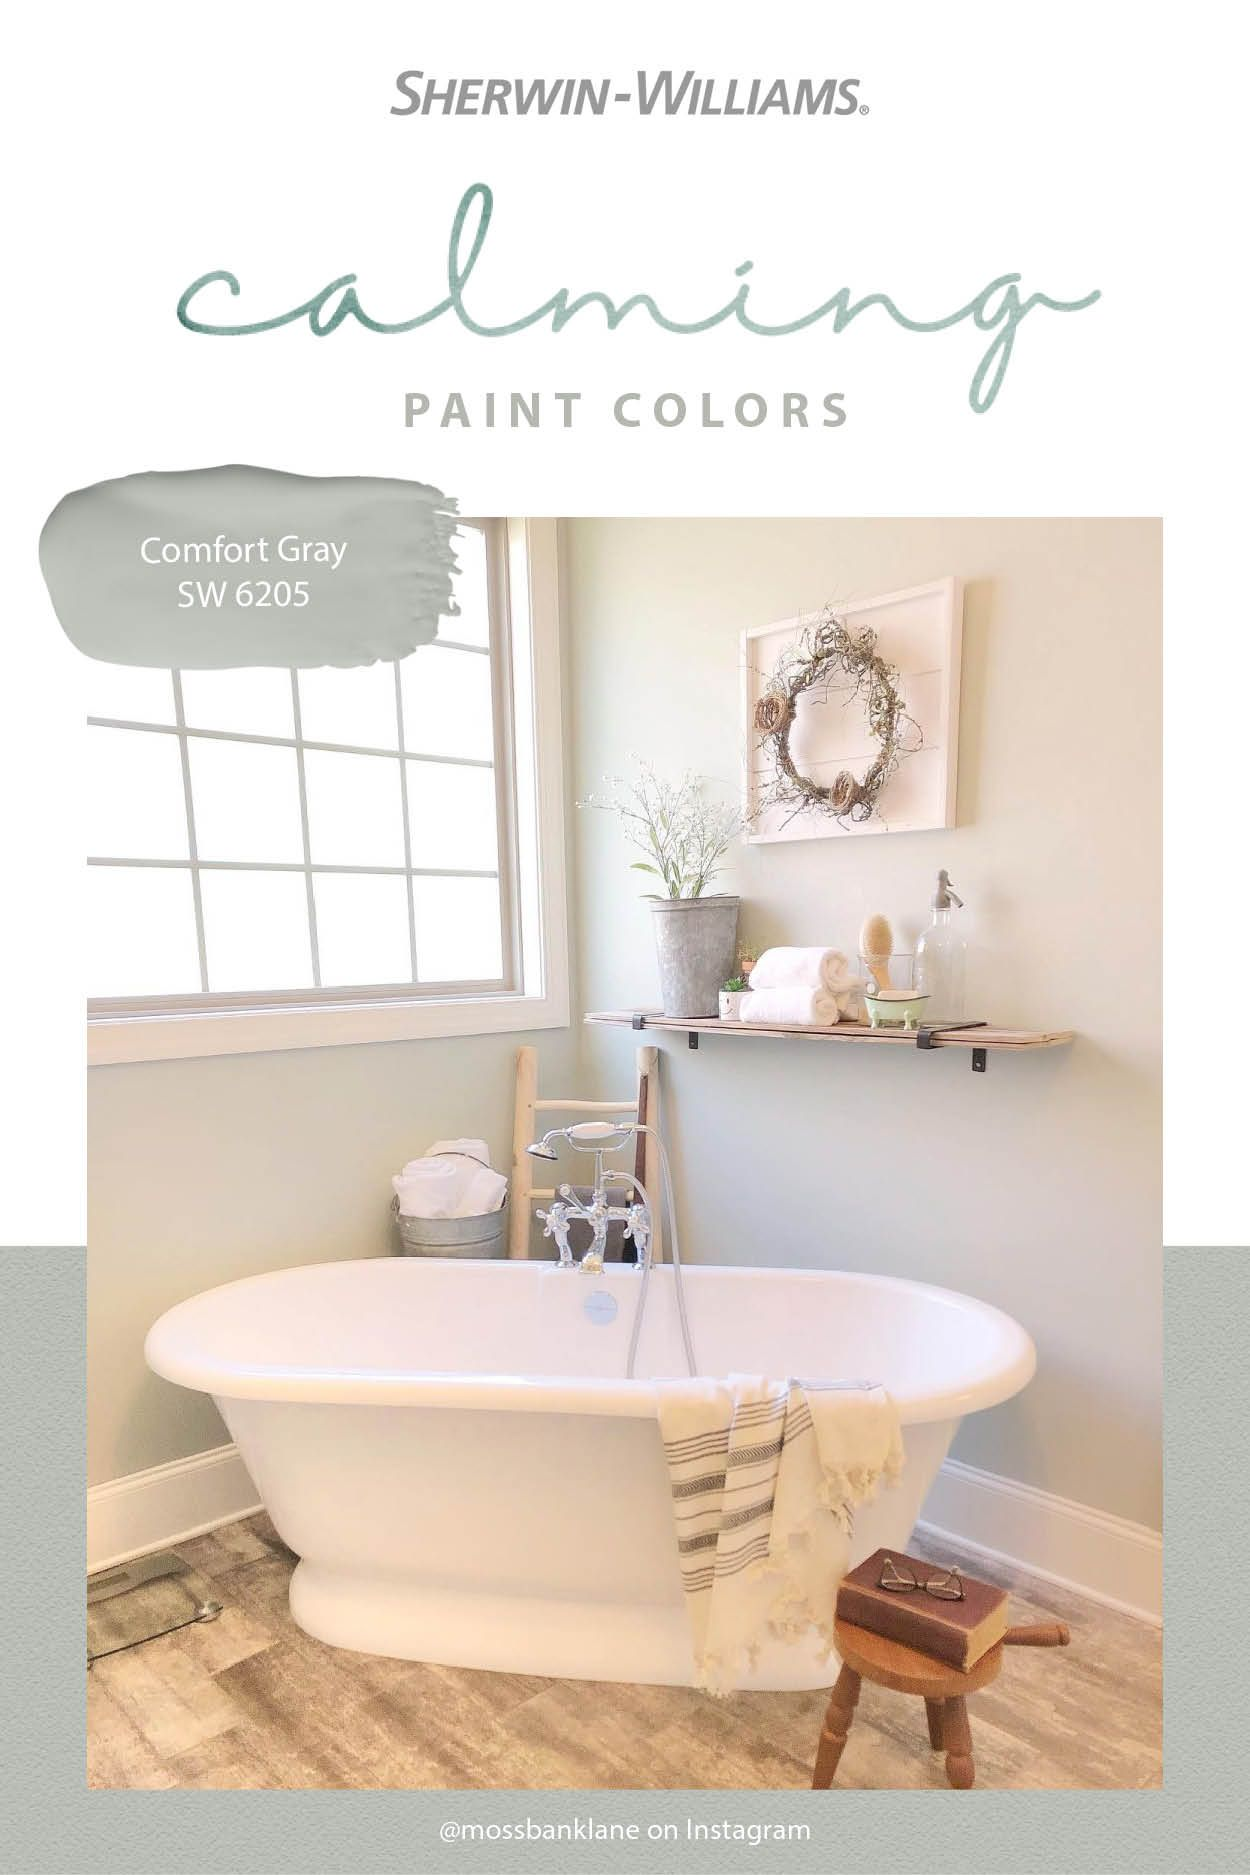 Beautiful Bathroom Paint Colors In 2020 Bathroom Paint Color Inspiration Small Bathroom Paint Colors Small Bathroom Paint